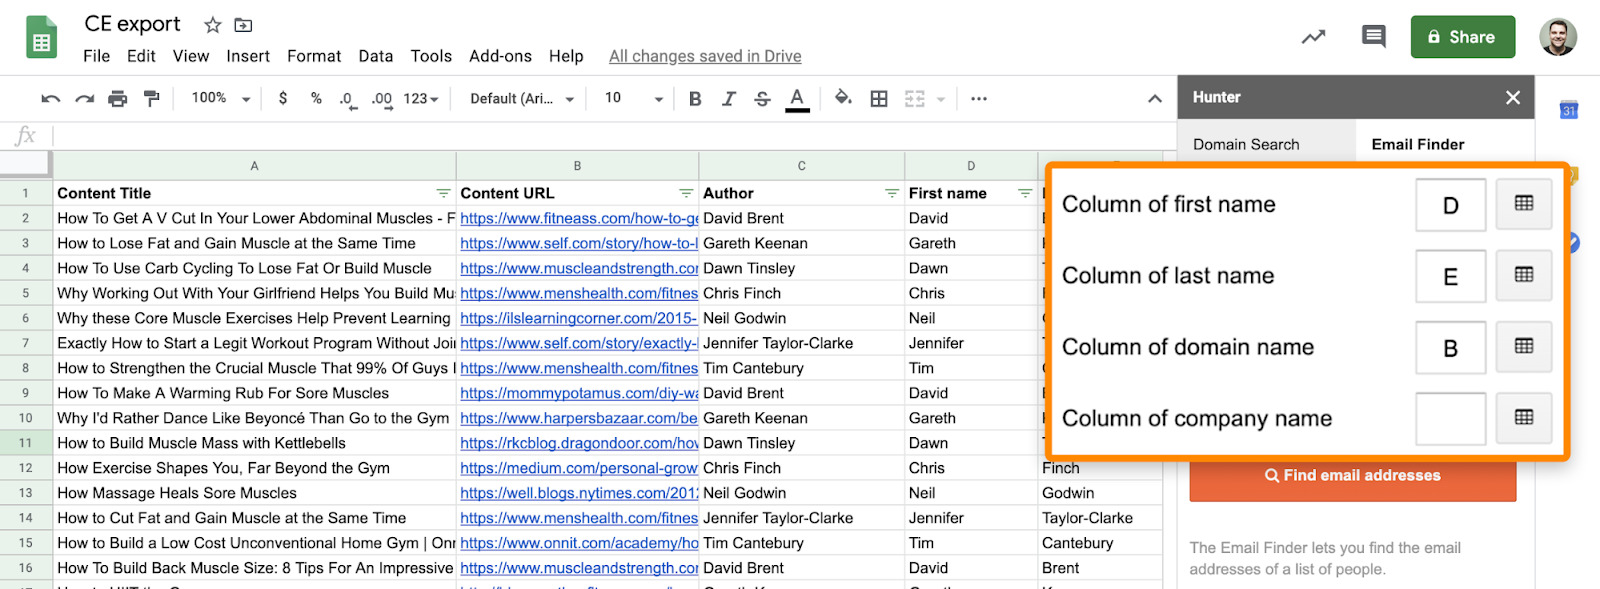 9 hunter google sheets